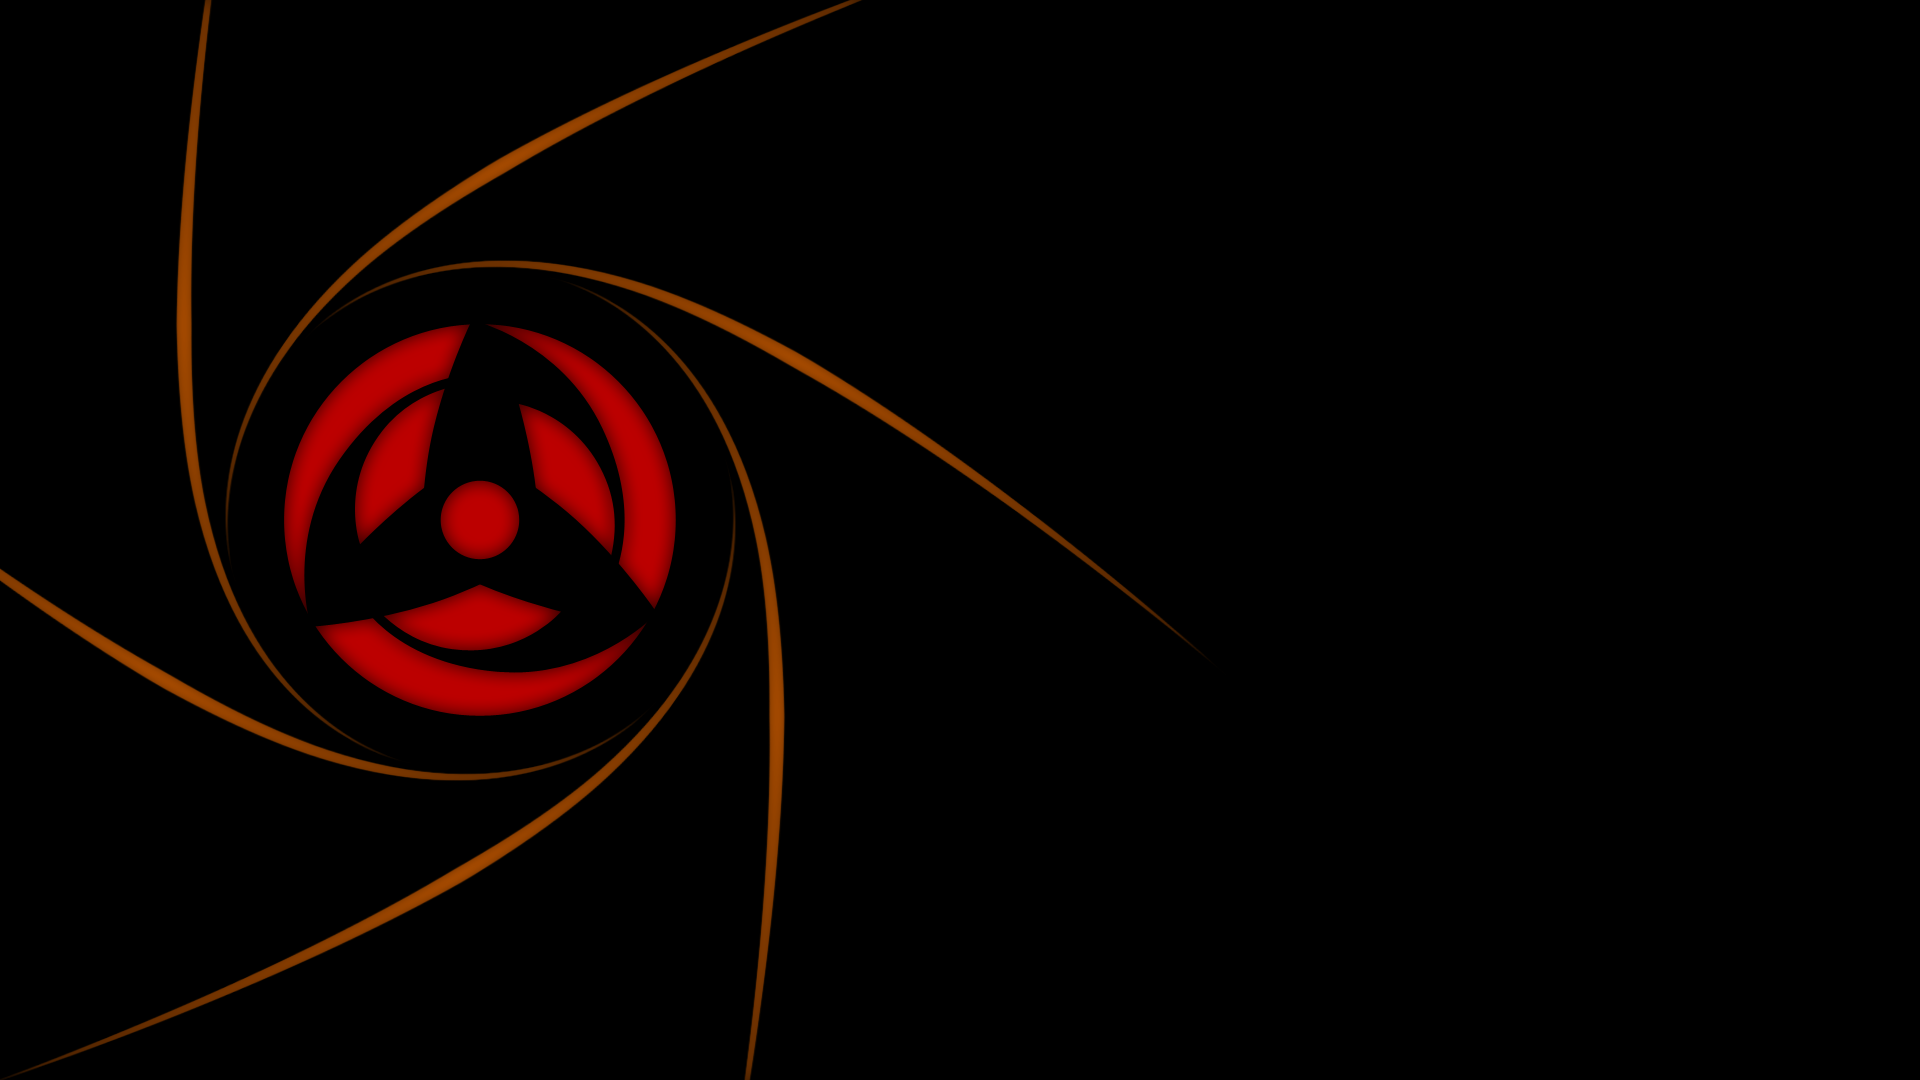 Download 1920x1080 Sharingan Obito Naruto Wallpapers for 1920x1080